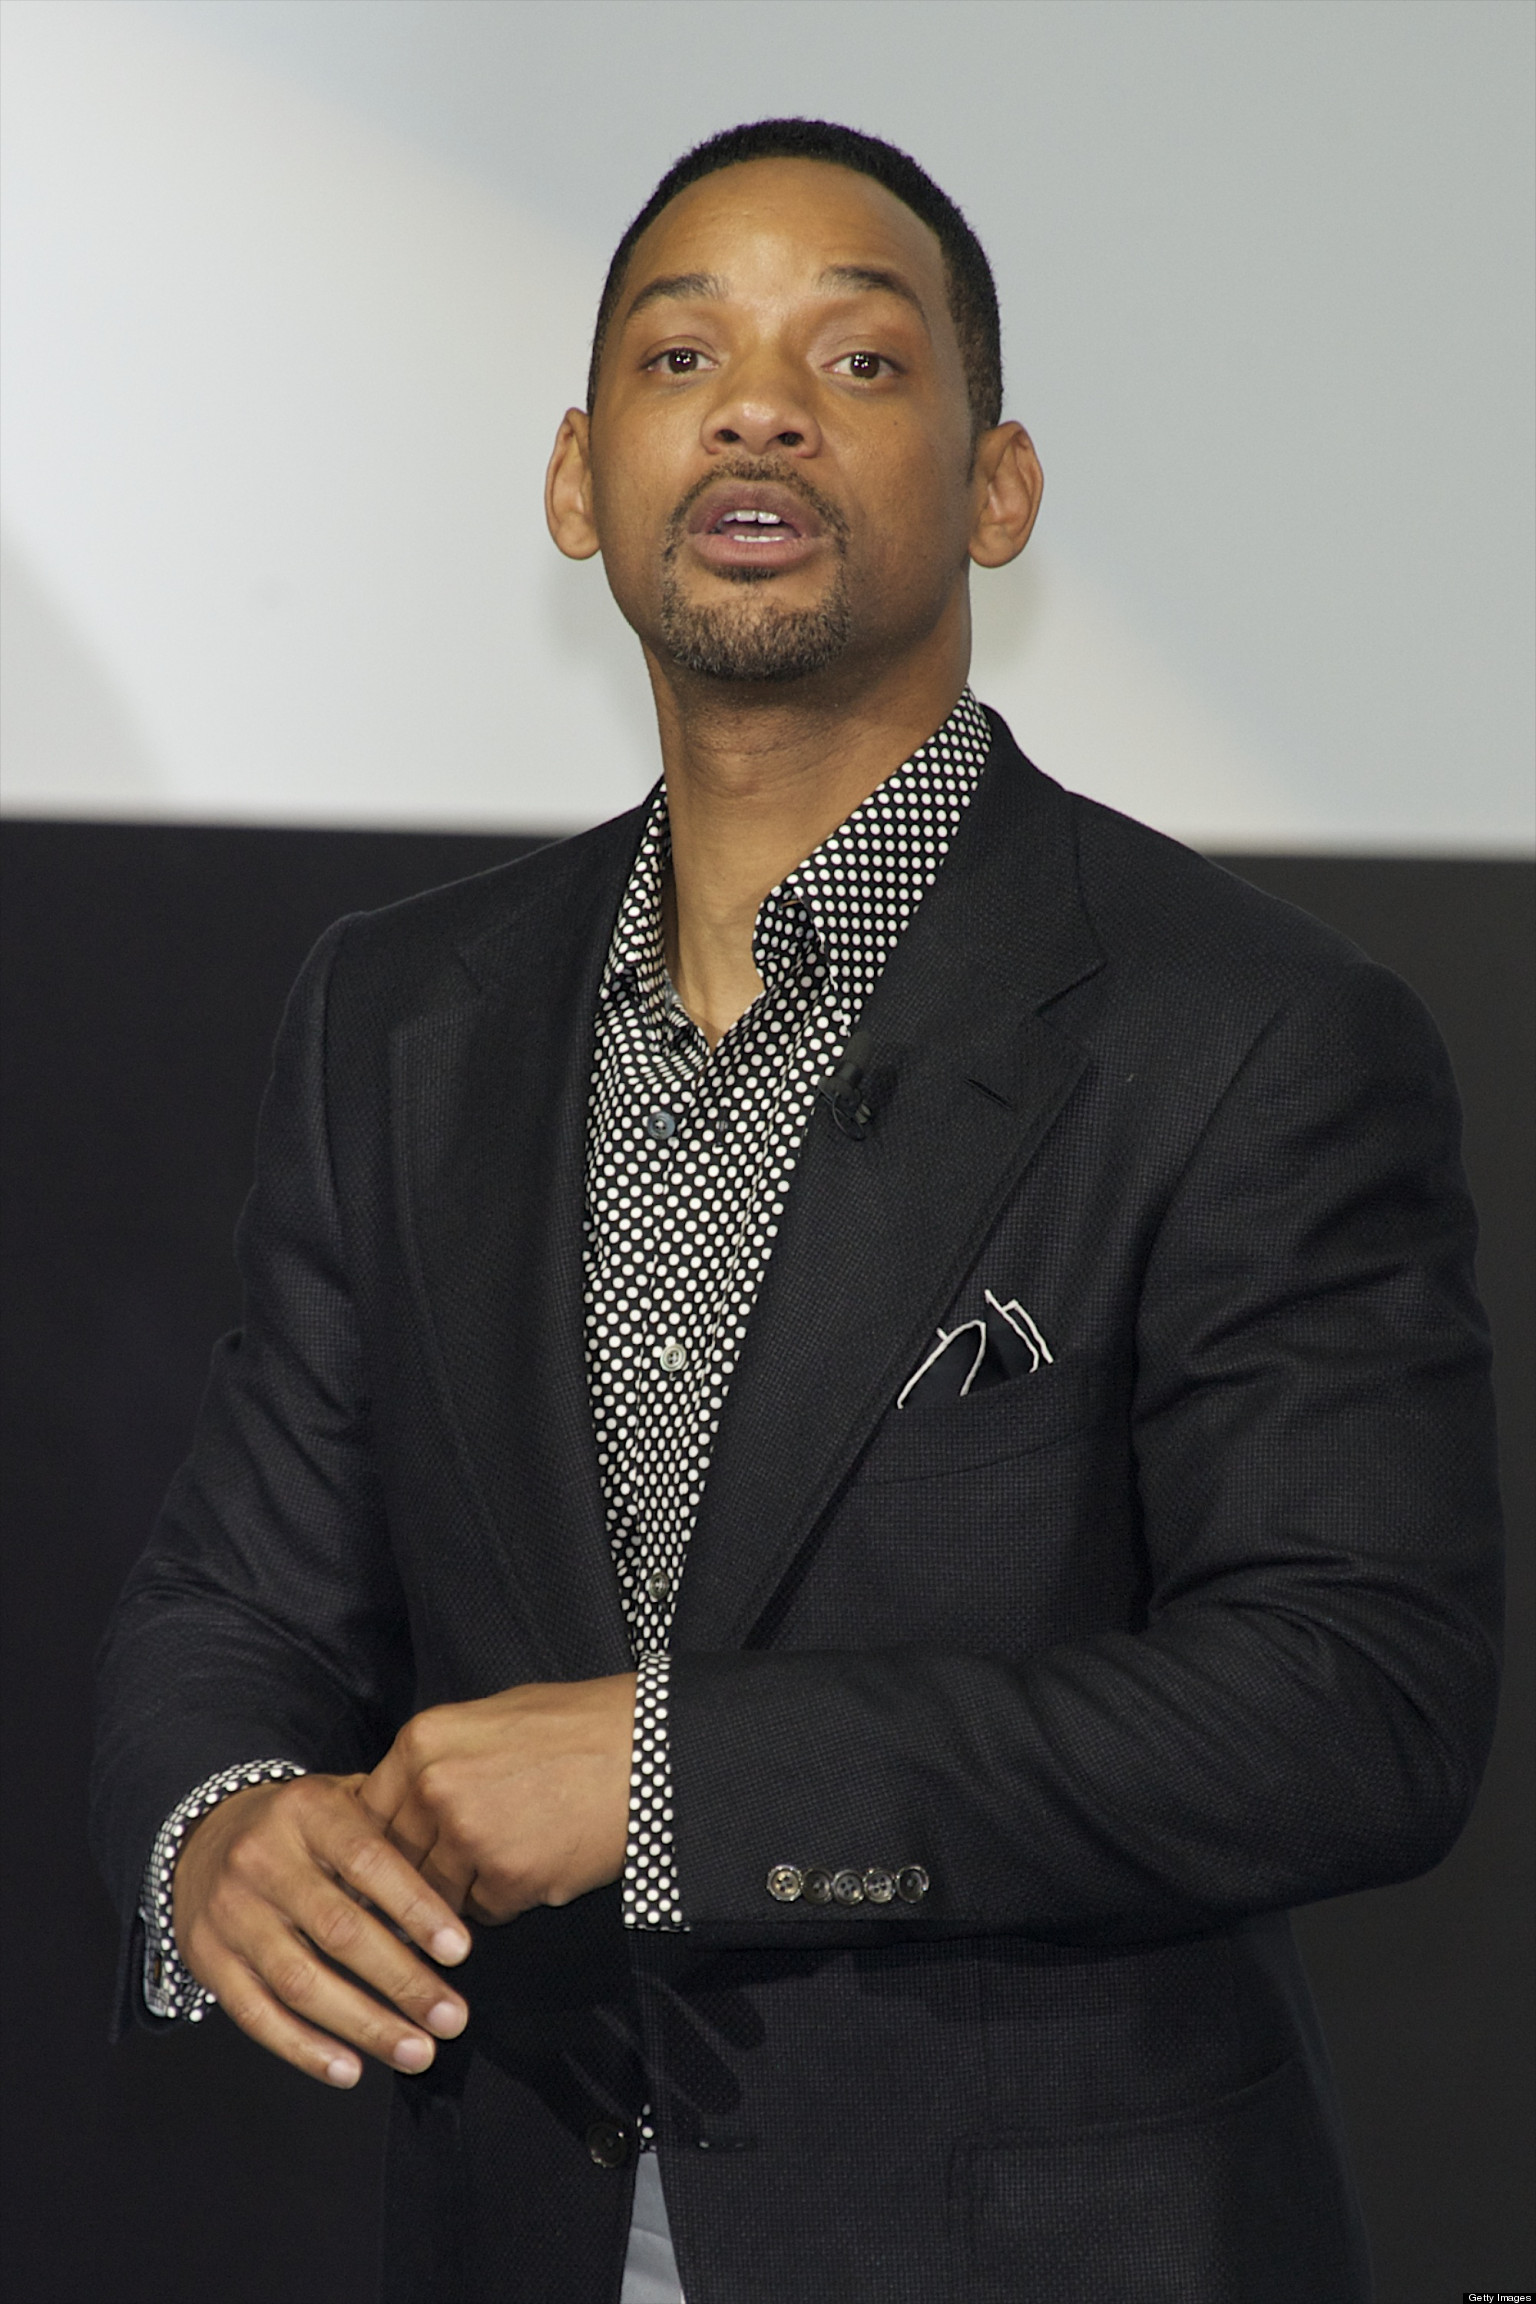 WILL SMITH BROTHER IN LAW ARRESTED Facebook